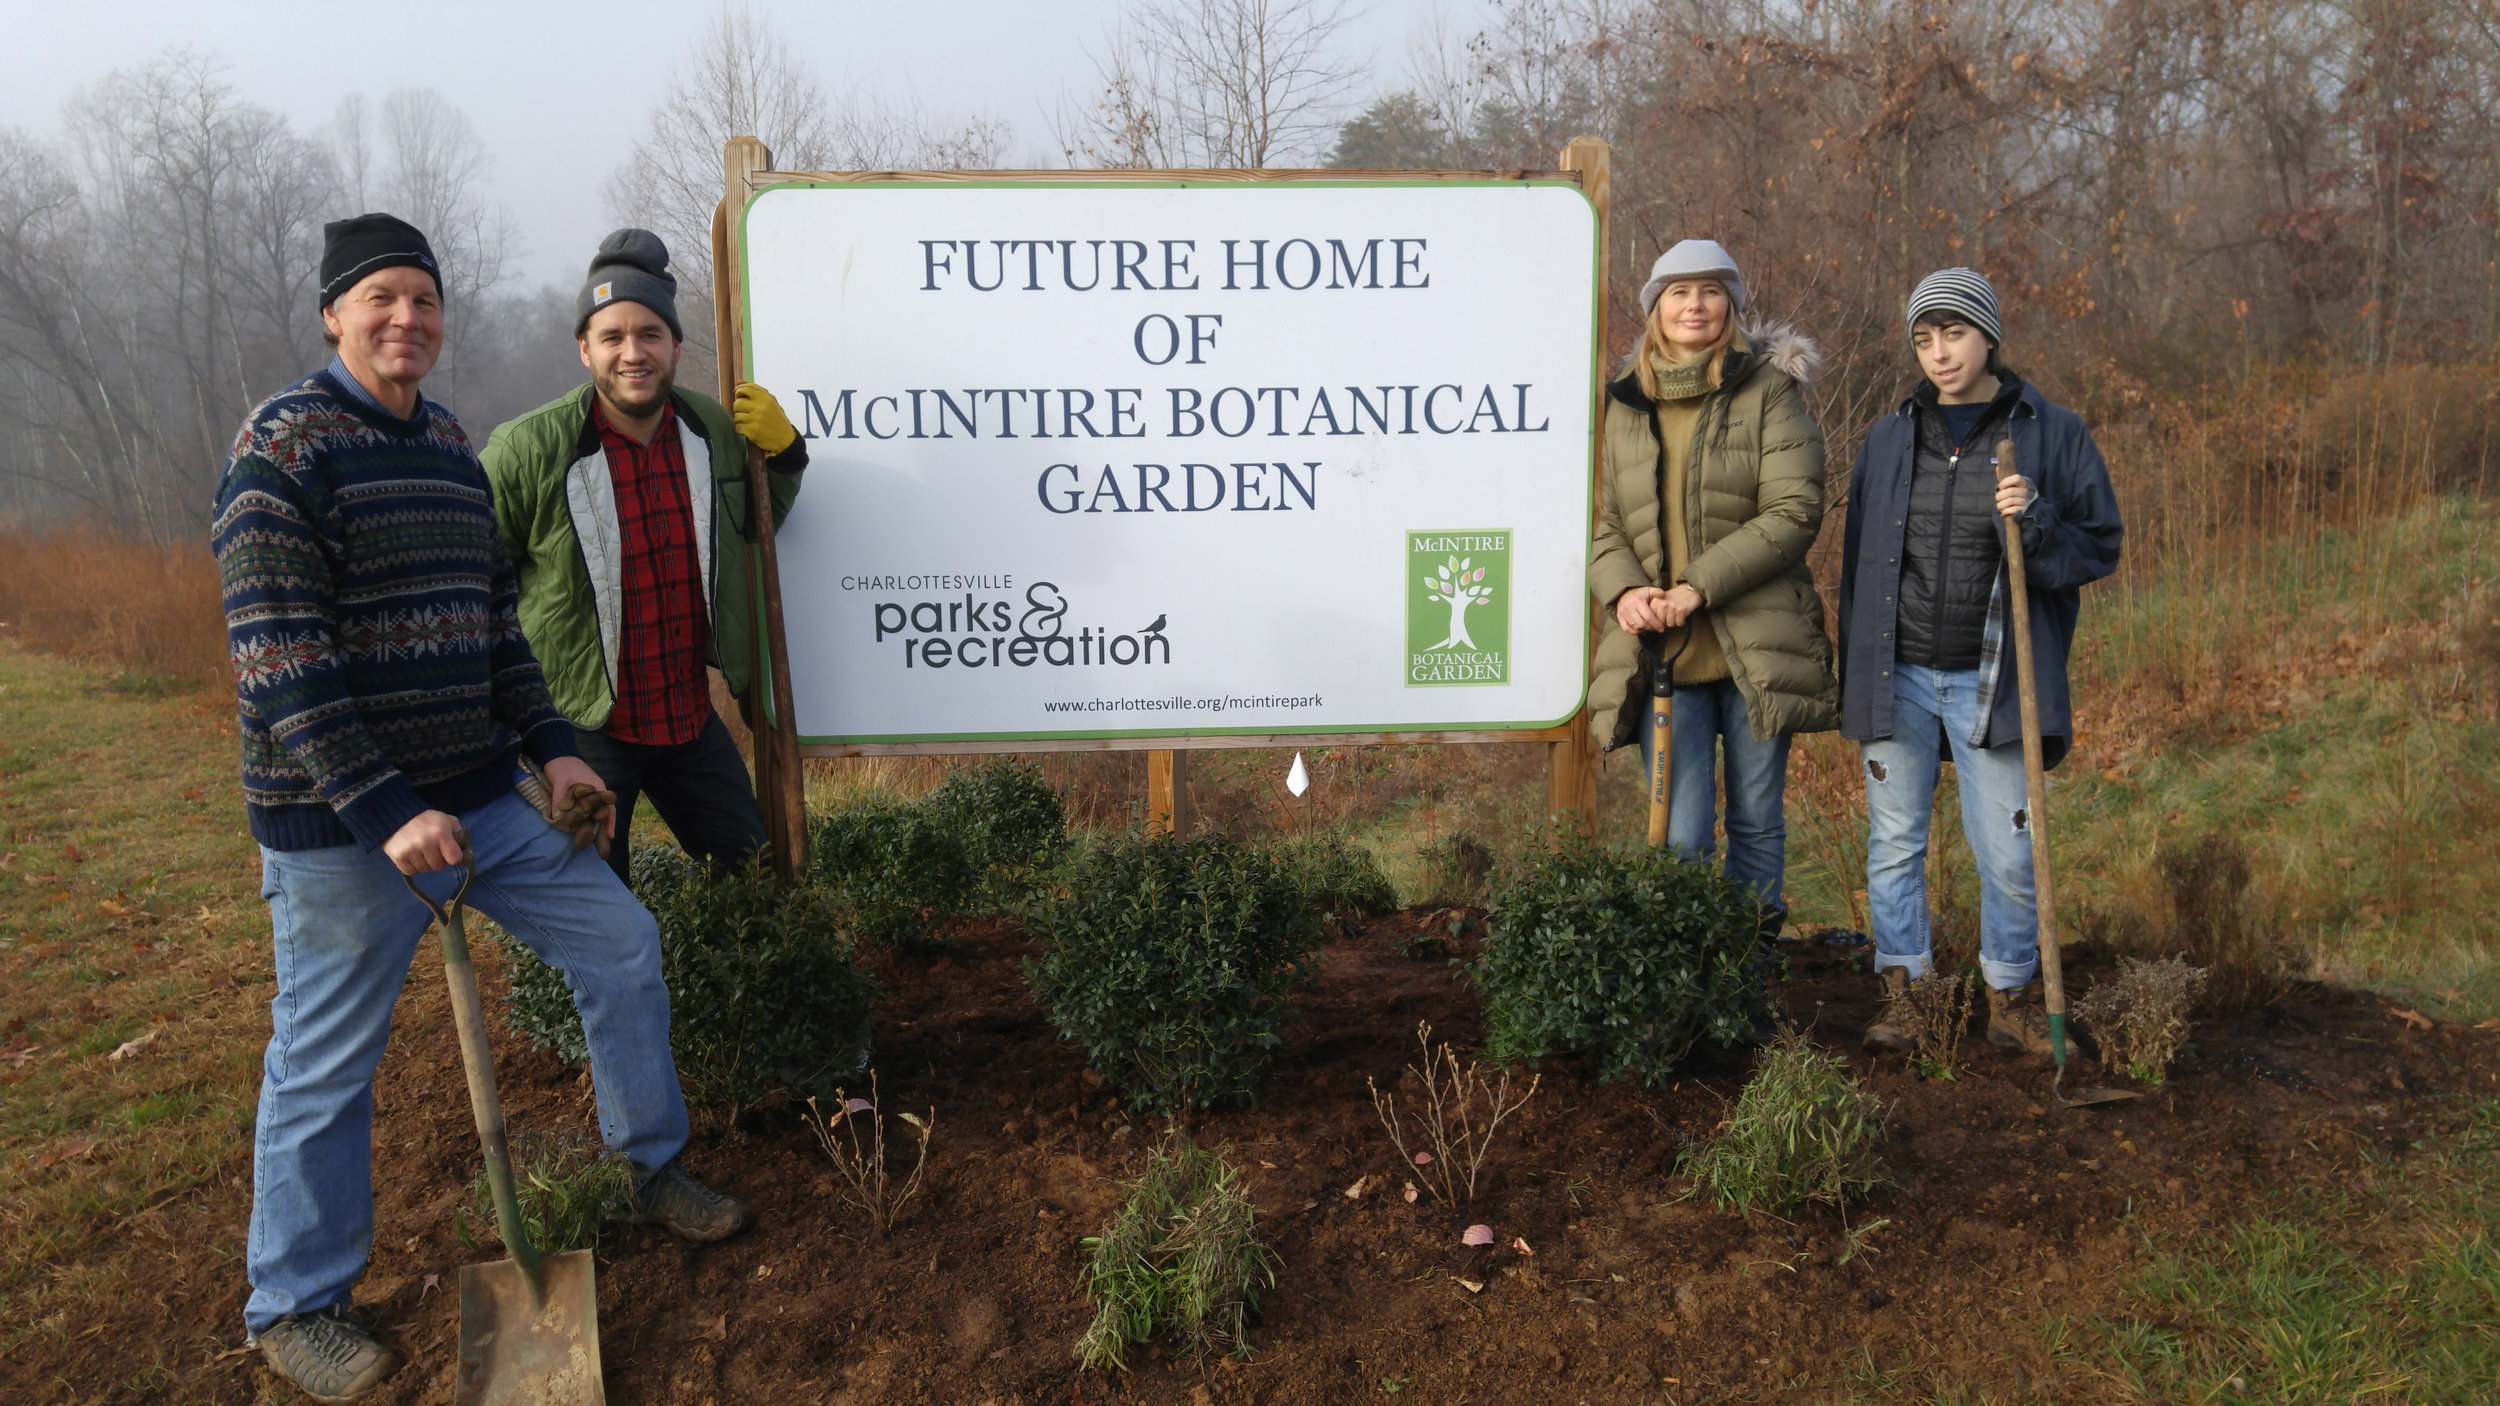 Kennon, Luke, Janna, and Sydna standing by the new sign.